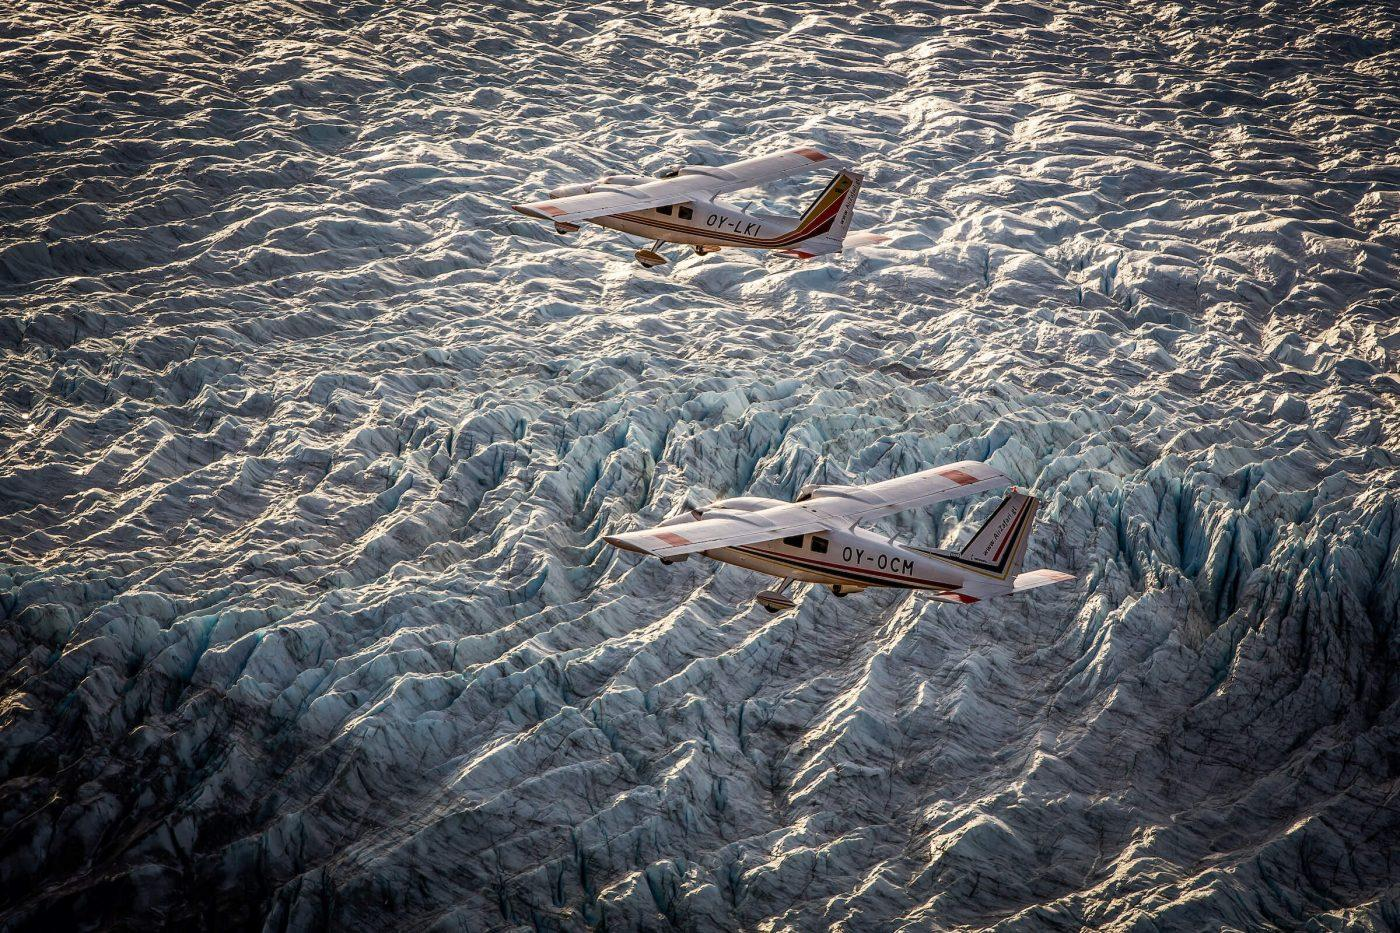 Two Air Zafari flightseeing planes over the Greenland Ice Sheet near Kangerlussuaq Airport. By Mads Pihl